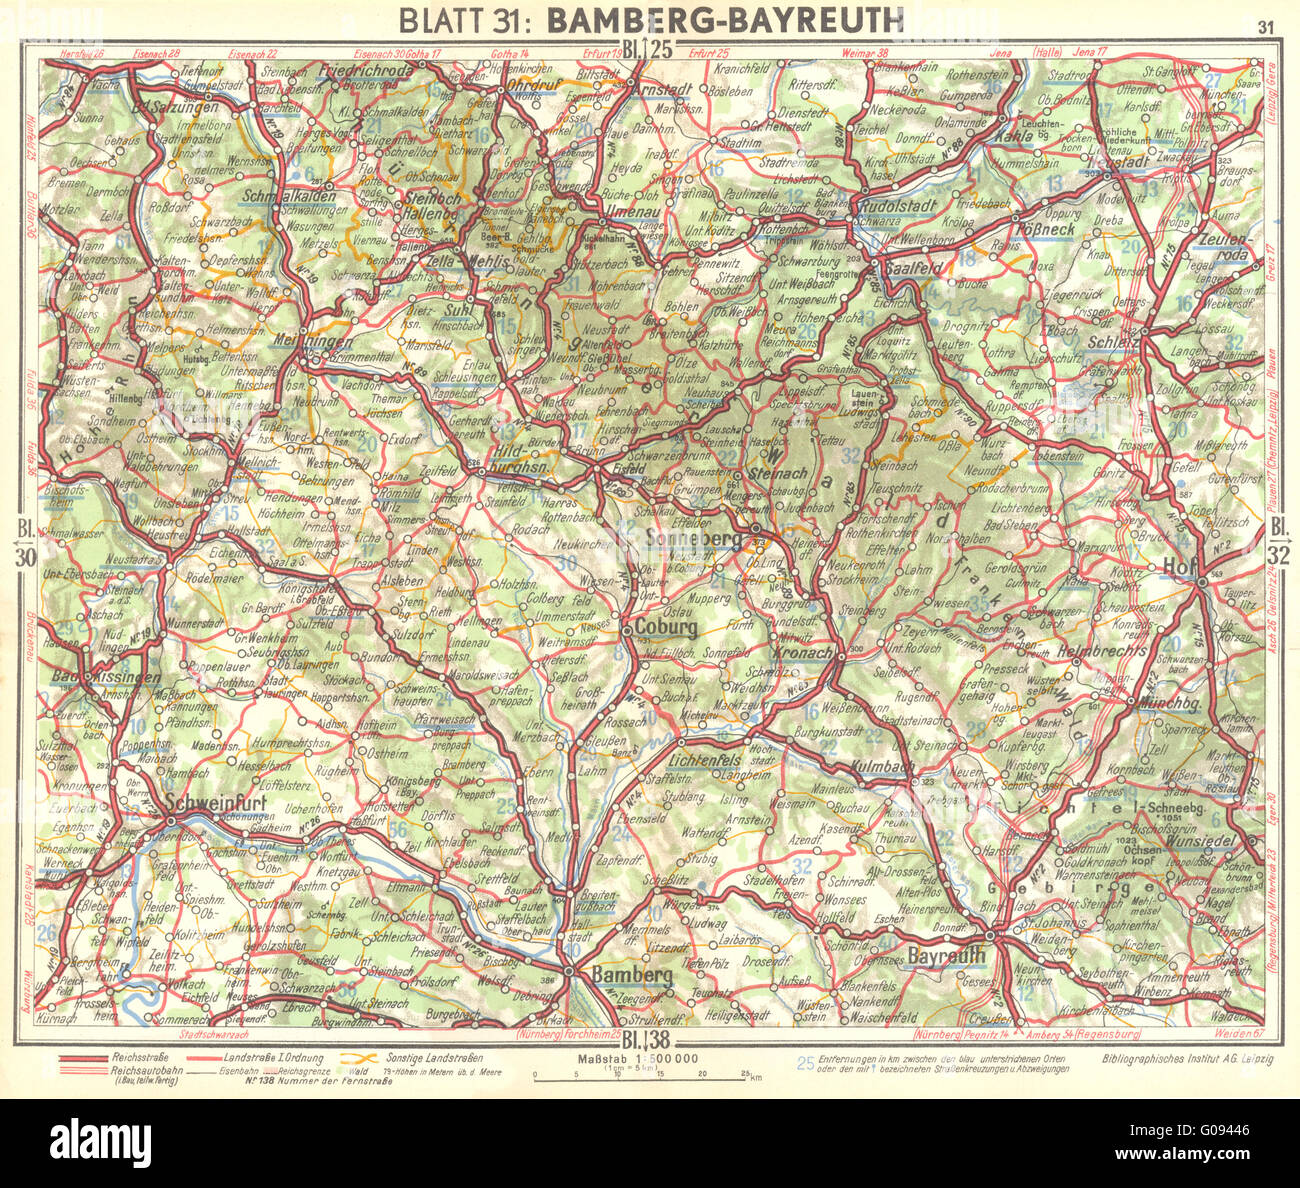 Germany Bamberg Bayreuth 1936 Vintage Map Stock Photos Germany